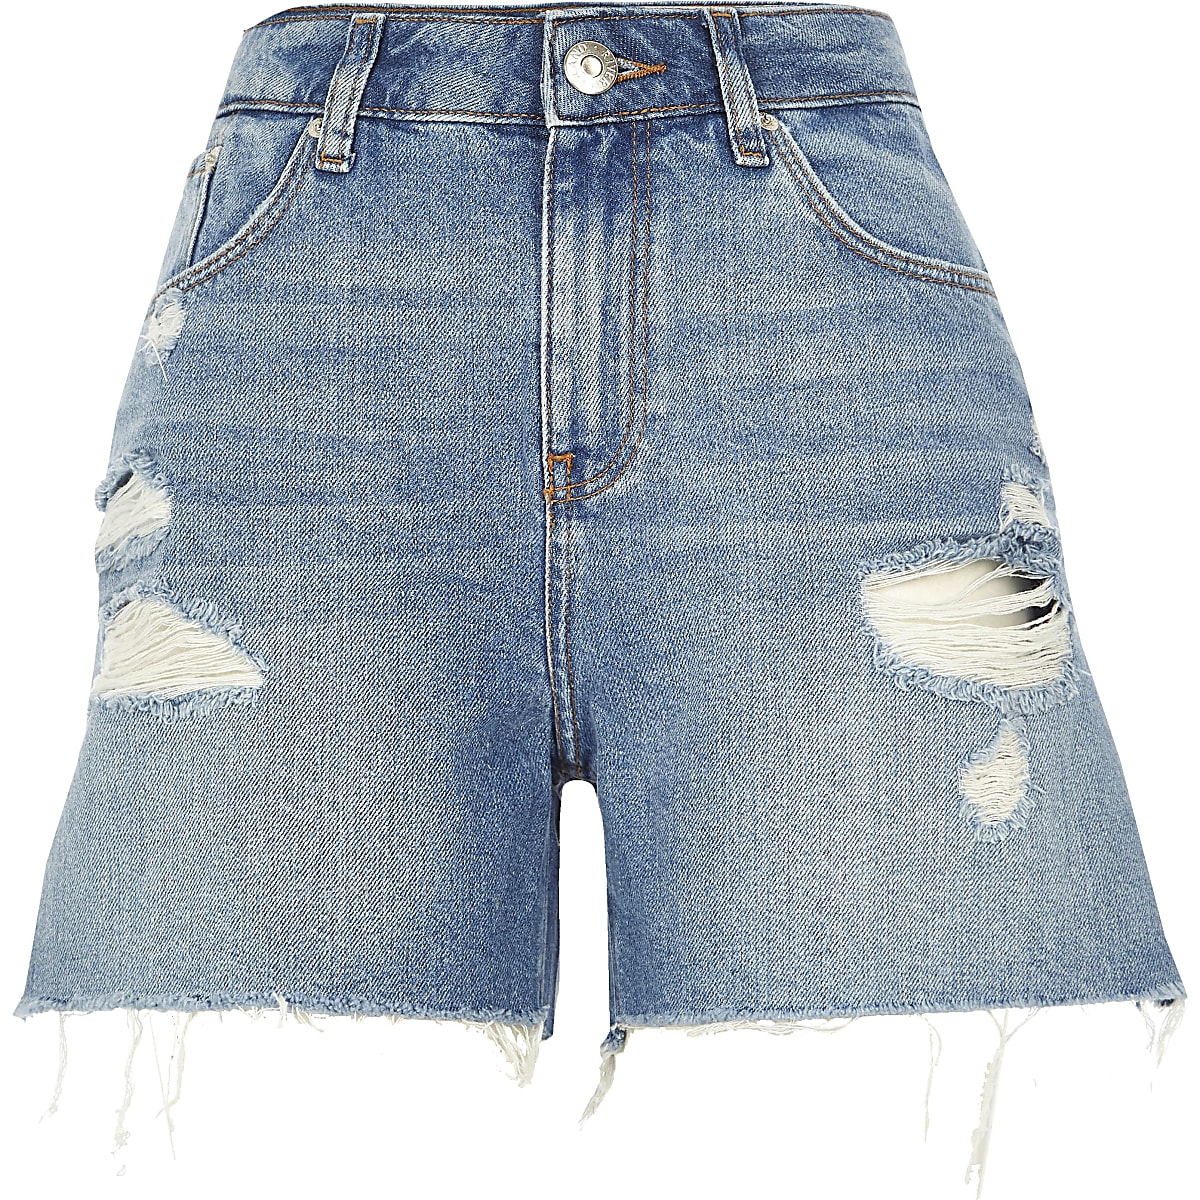 d8f99b9be9 Mid blue Caroline Flack denim shorts - Casual Shorts - Shorts - women